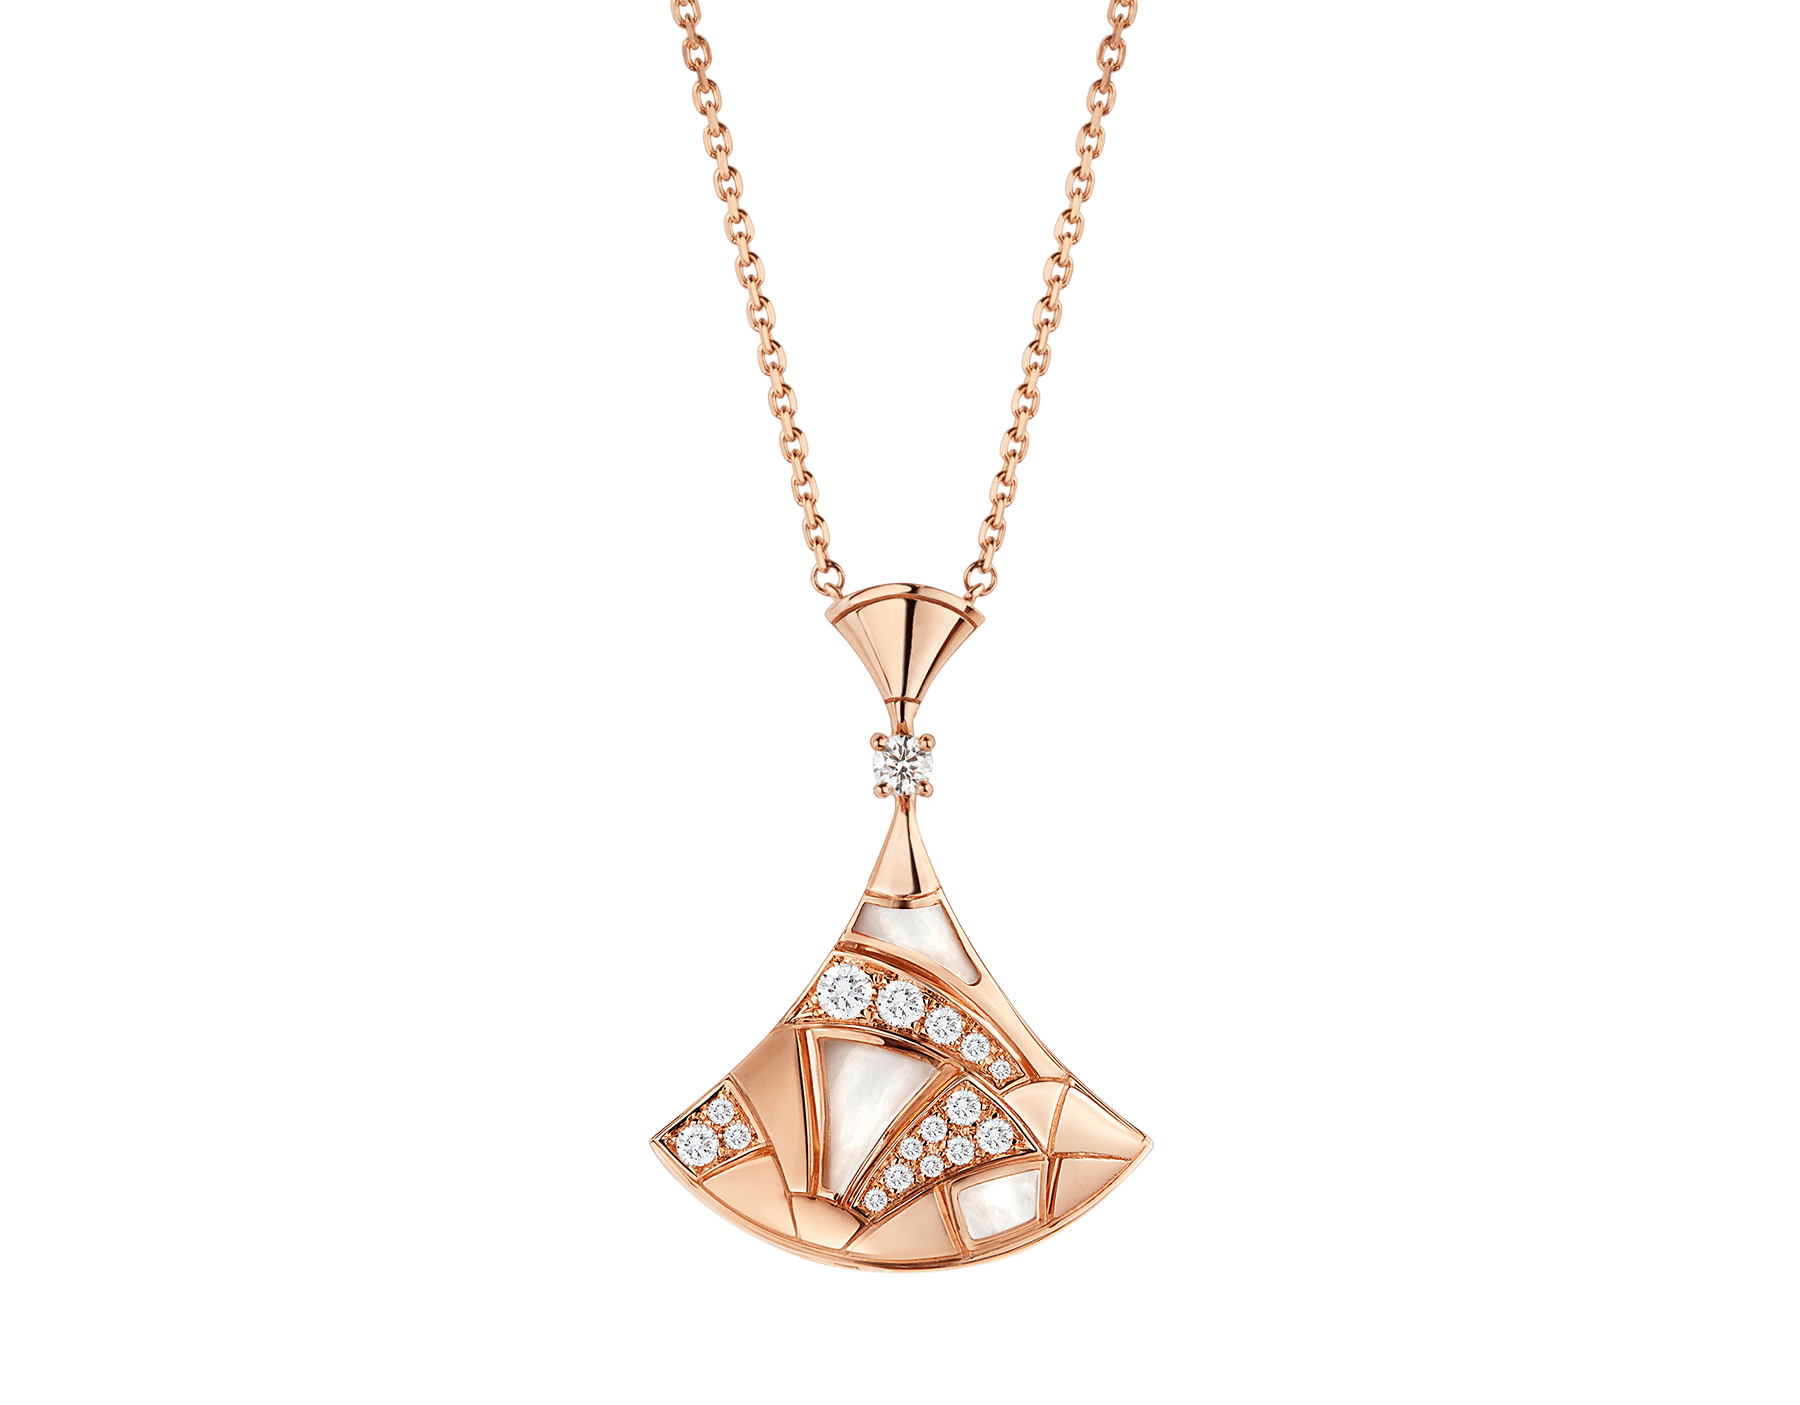 DIVAS' DREAM necklace in 18 kt rose gold with pendant set with mother-of-pearl elements, one diamond and pavé diamonds. 350065 image 1